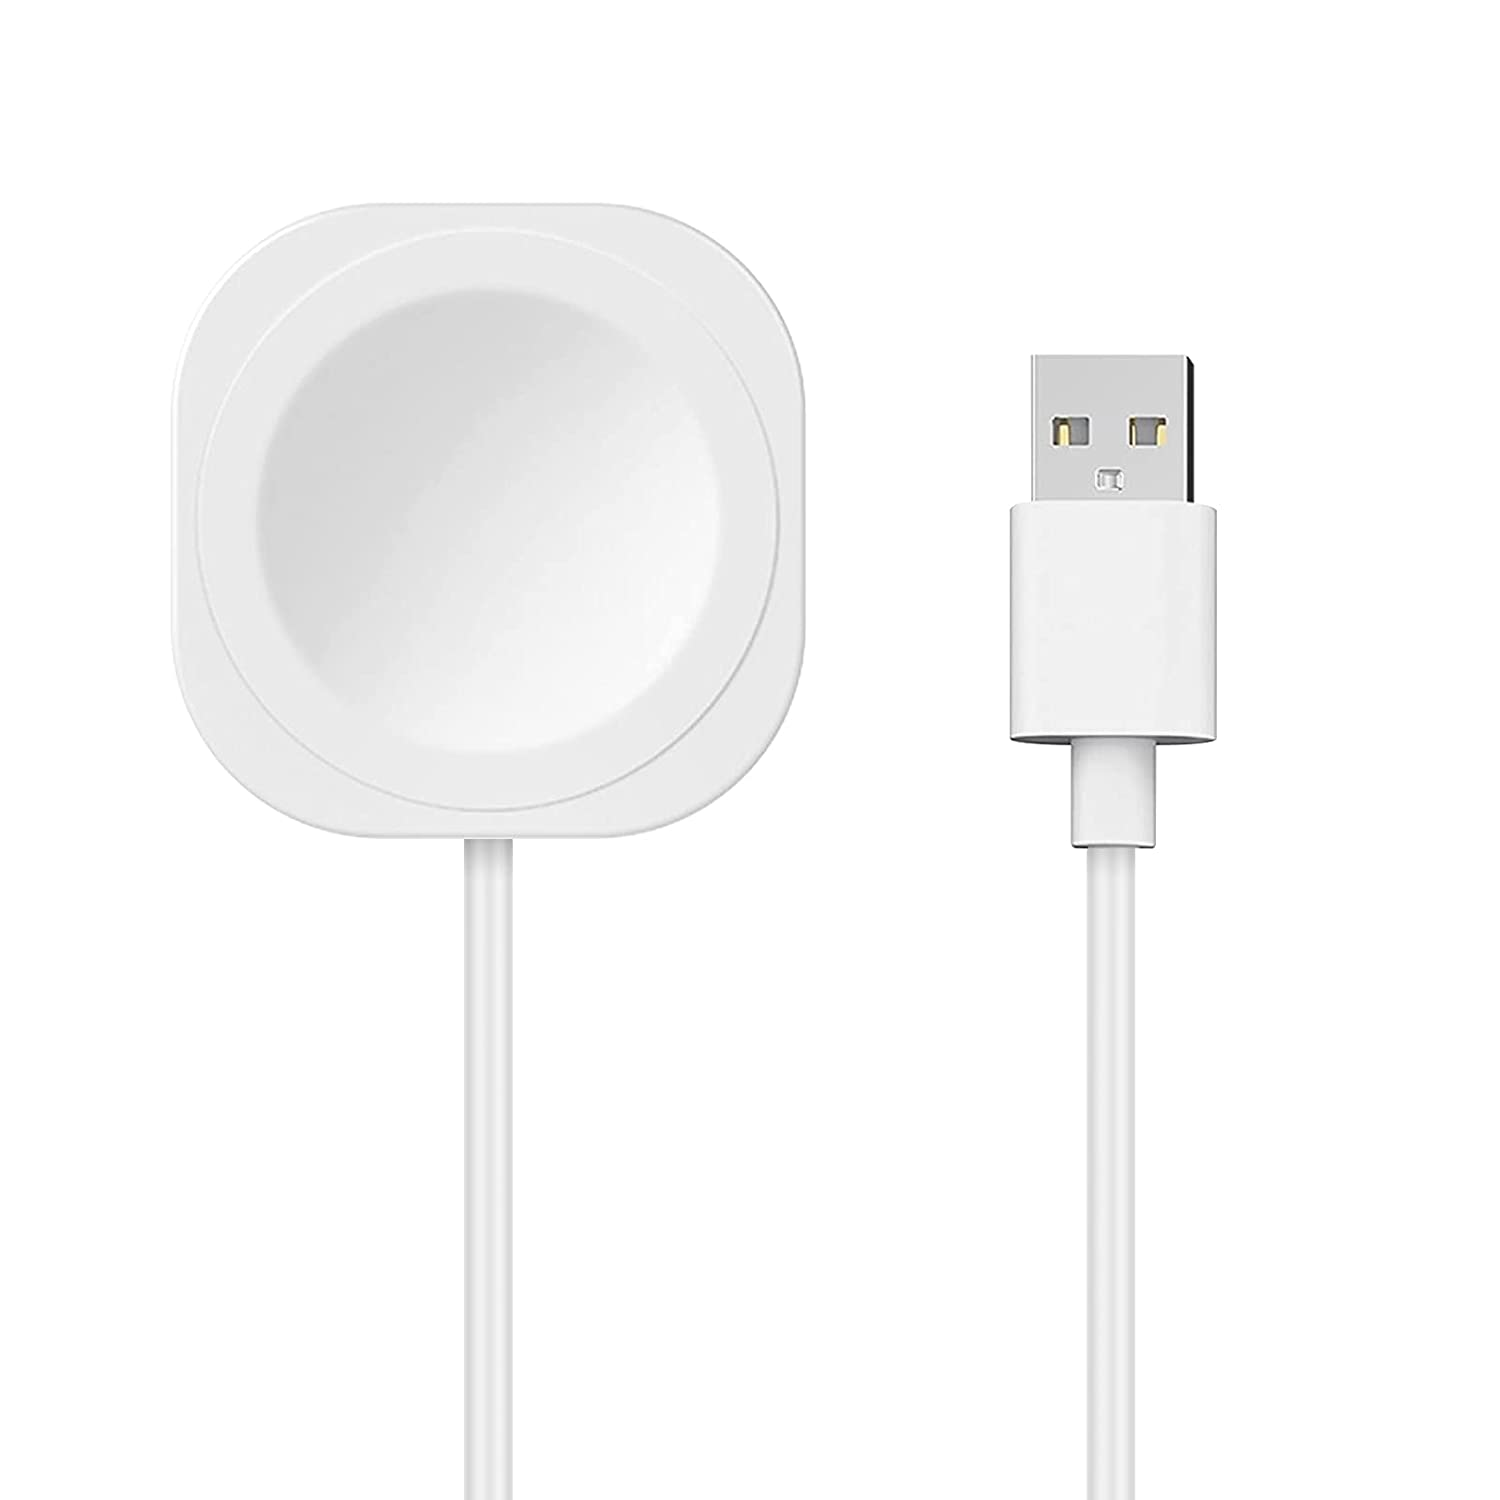 Watch Charger Cable Compatible with Apple iWatch Series SE 6 5 4 3 2 1(38mm 40mm 42mm 44mm) - 3.3 FT